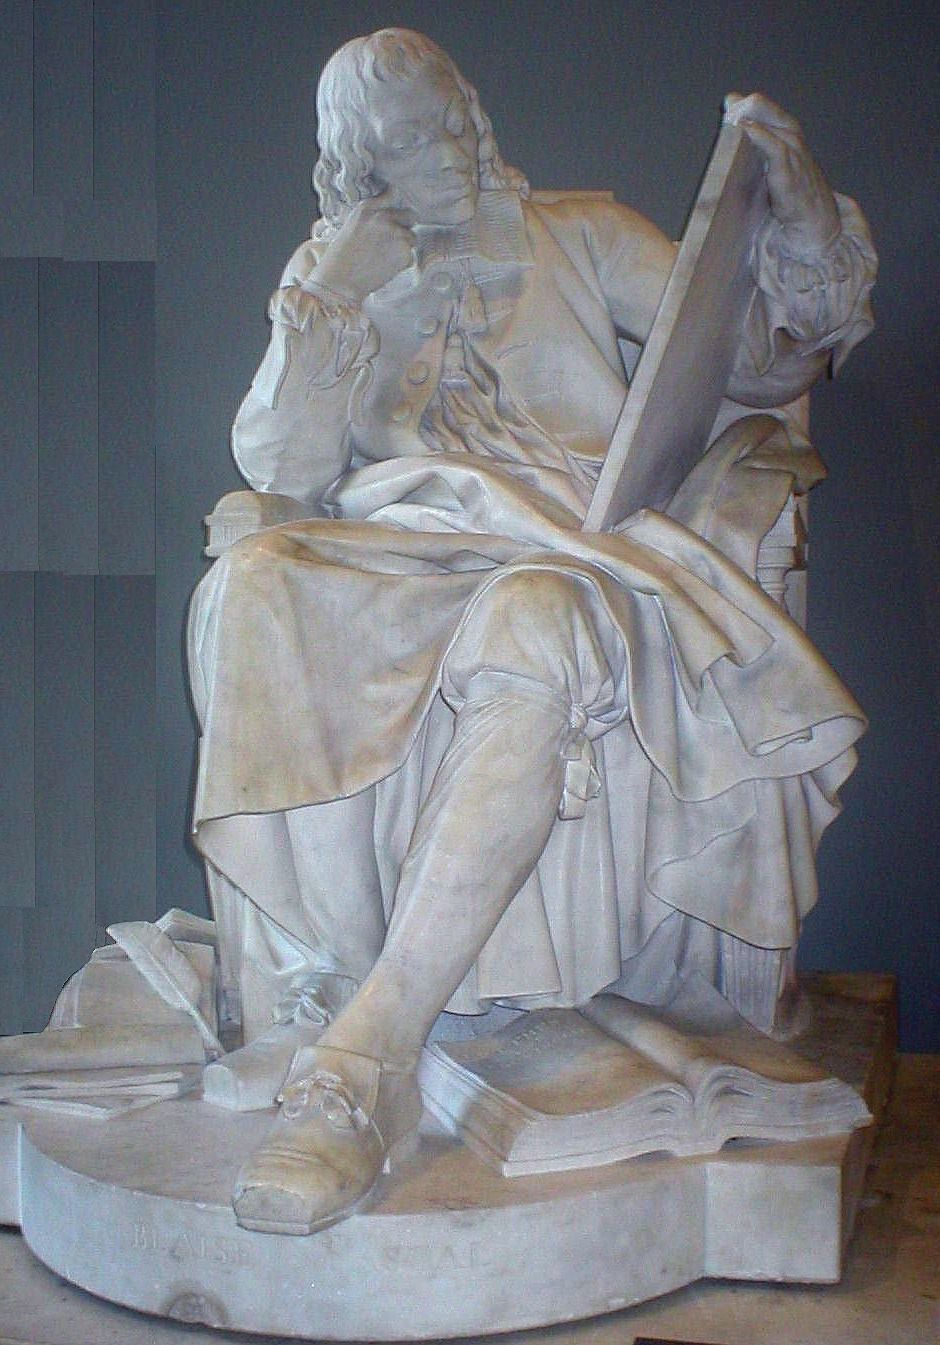 Statue of Blaise Pascal